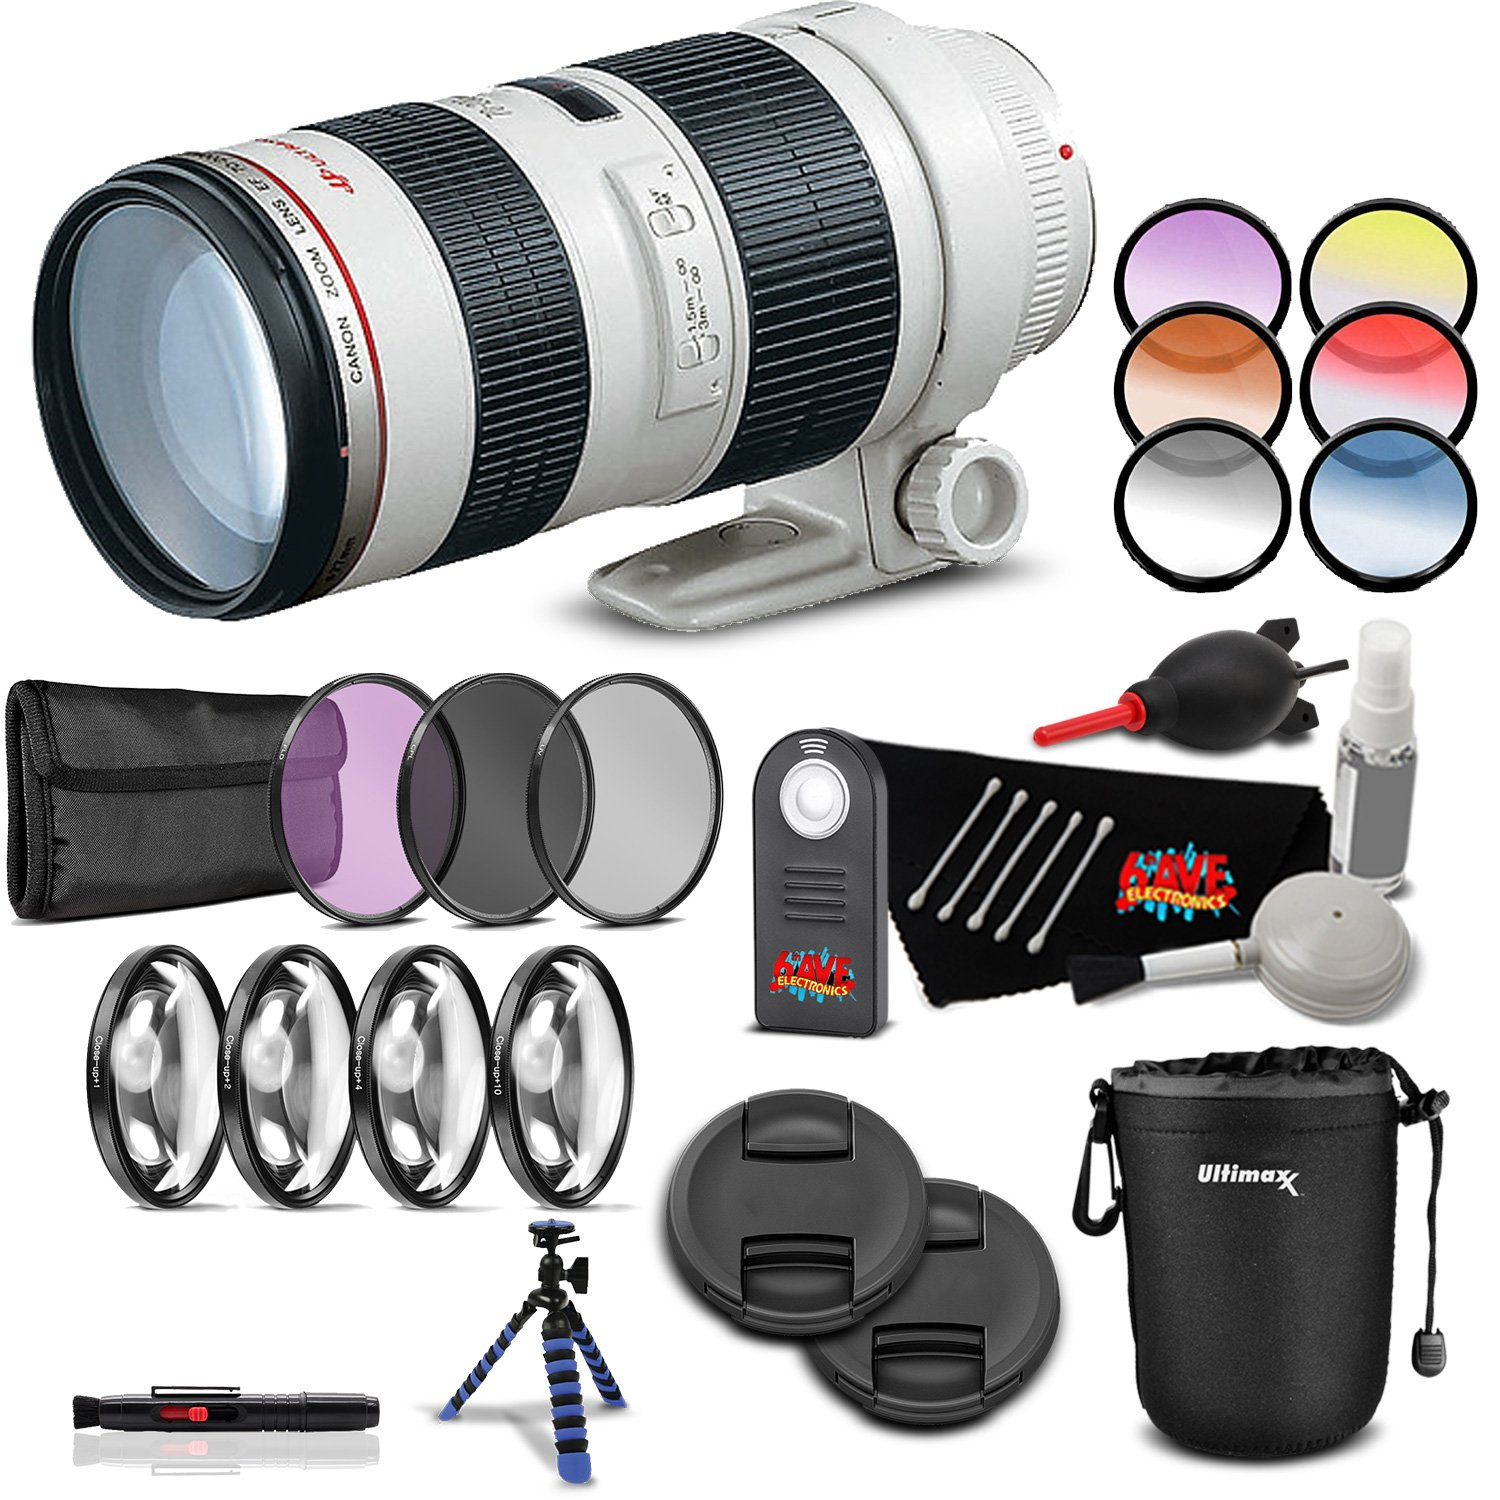 Canon Professional EF f/2.8L 100 mm Kit|70-200mm f/2 USMレンズアクセサリーバンドル国際モデル B07FMF78JG Professional Kit|70-200mm f/2.8L 70-200mm f/2.8L Professional Kit, ナンセイチョウ:eef22376 --- ijpba.info